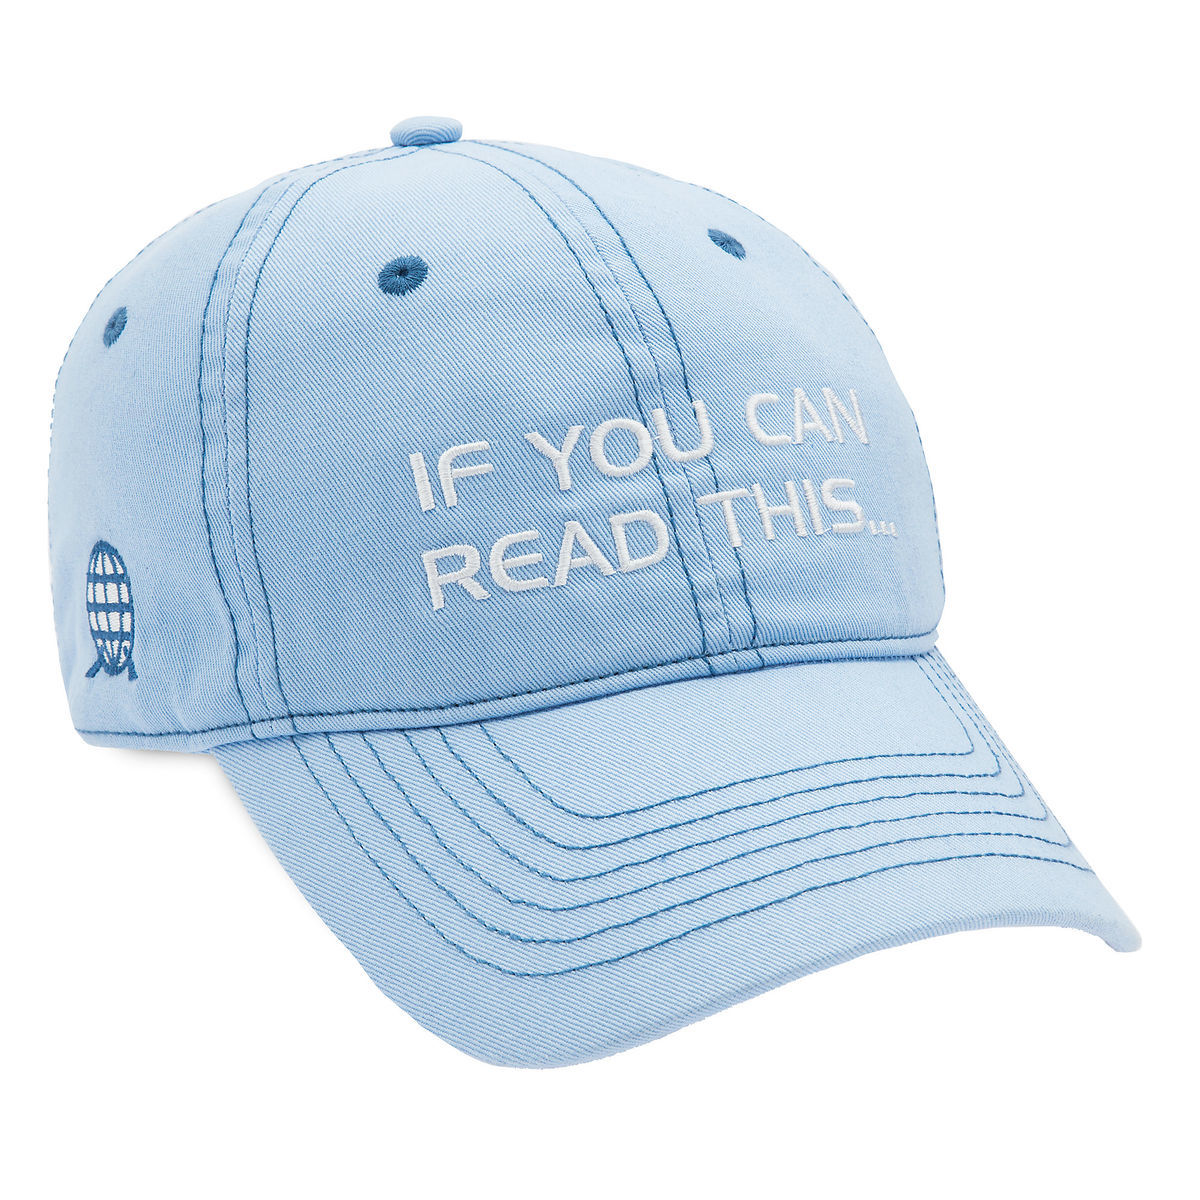 Product Image of ''Thank the Phoenicians'' Baseball Cap for Adults - Walt